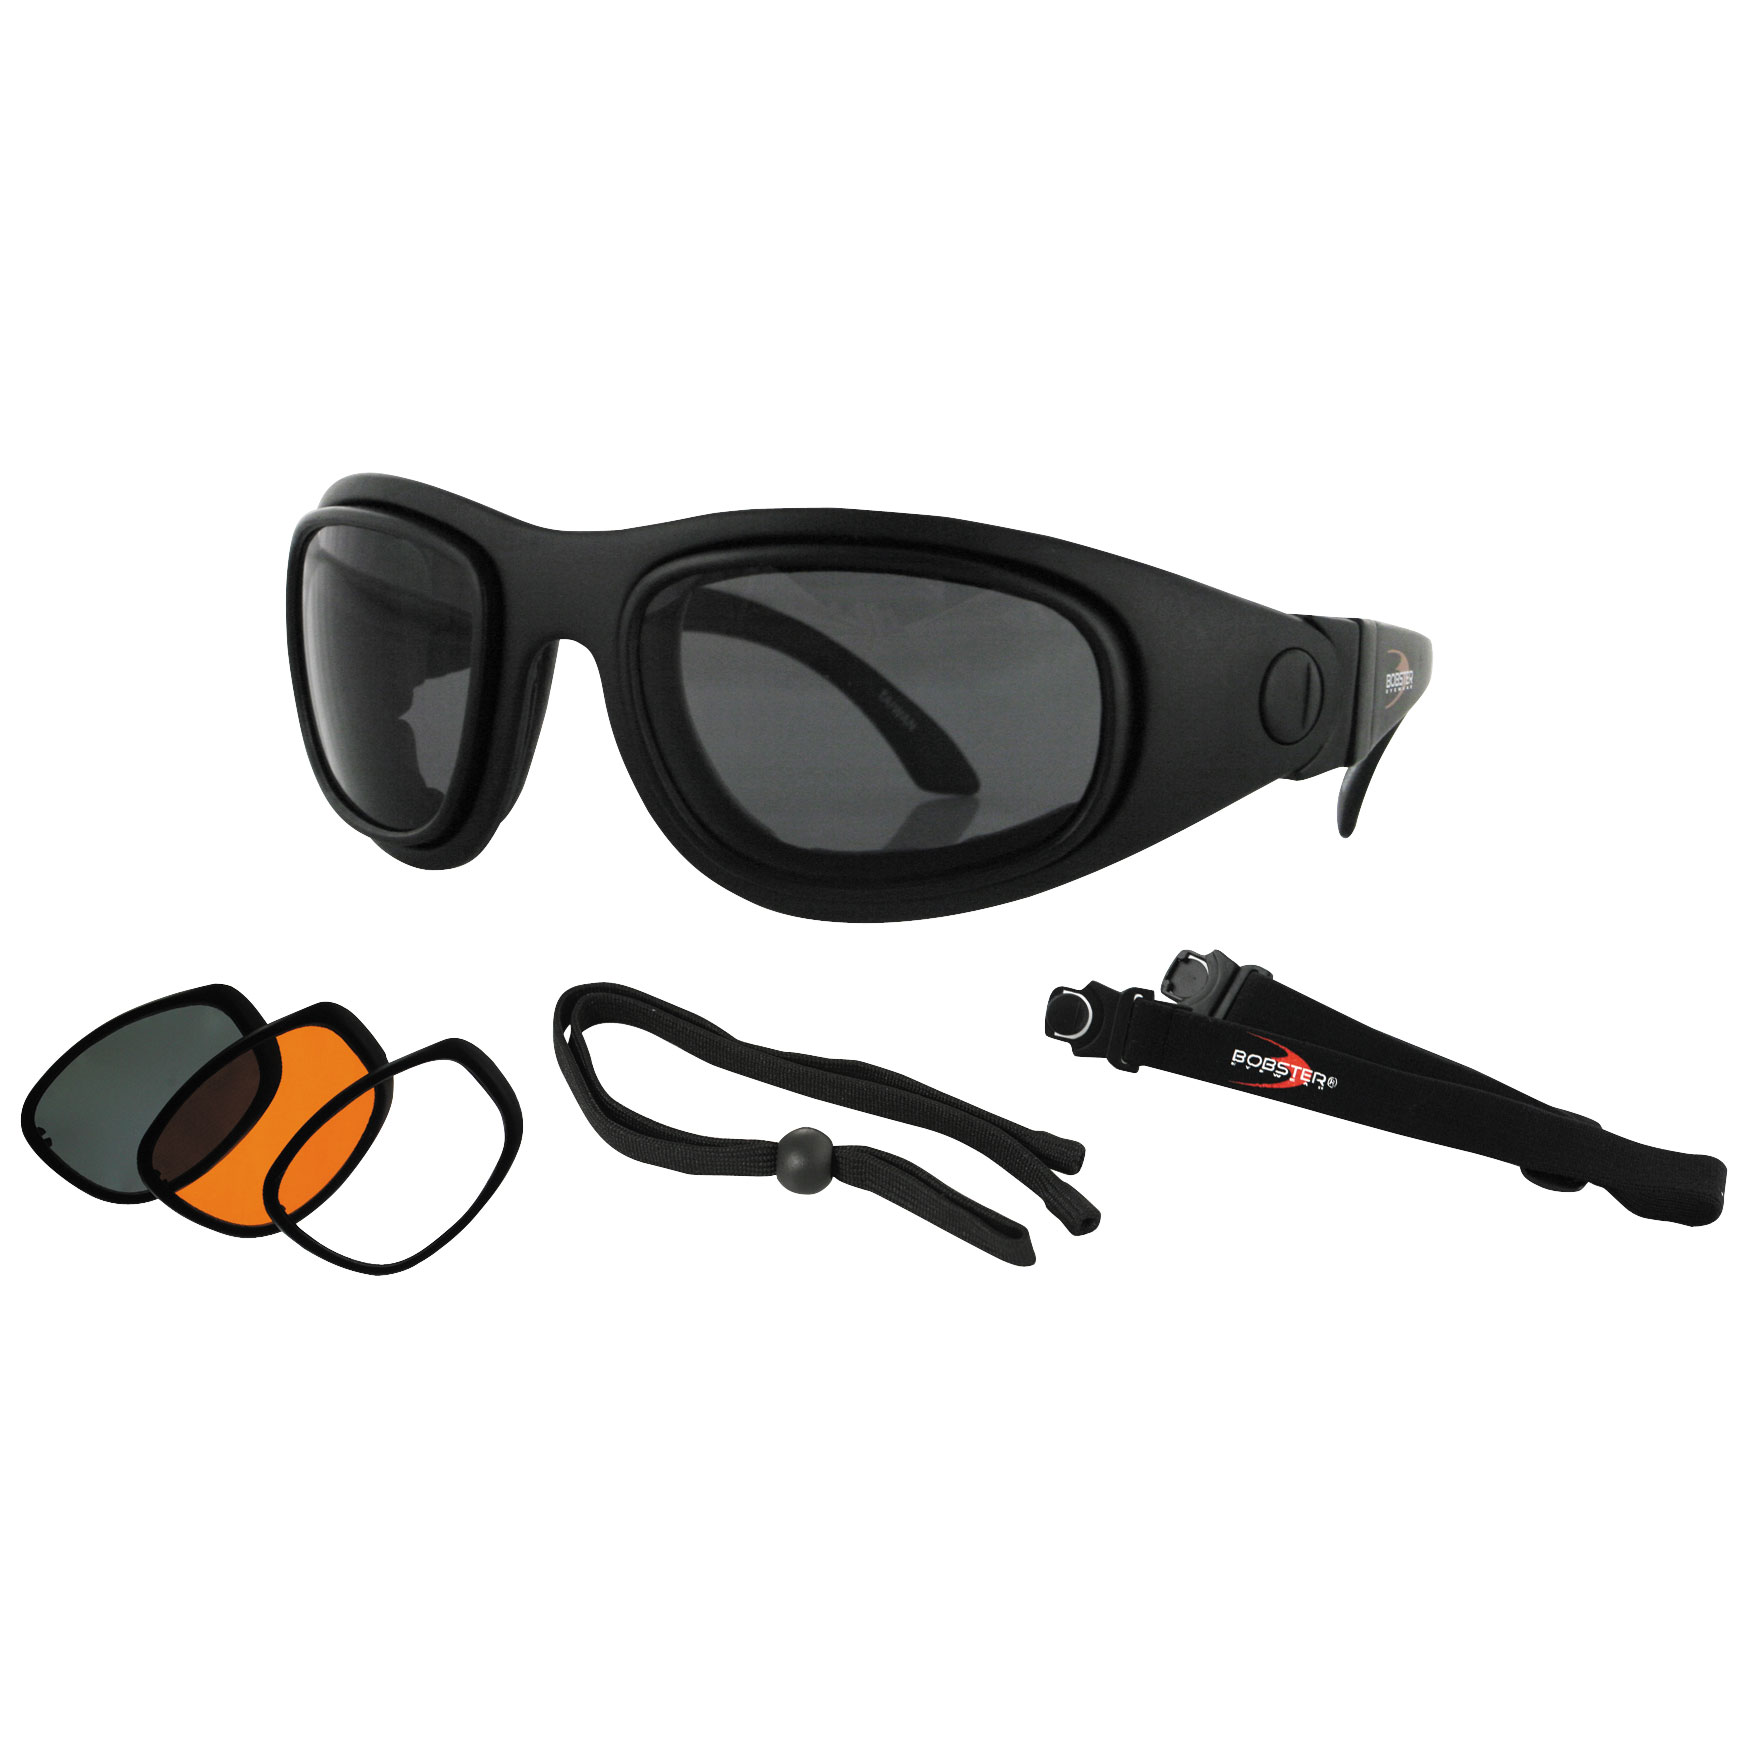 Bobster Sport and Street II Convertible and Interchangeable Sunglasses